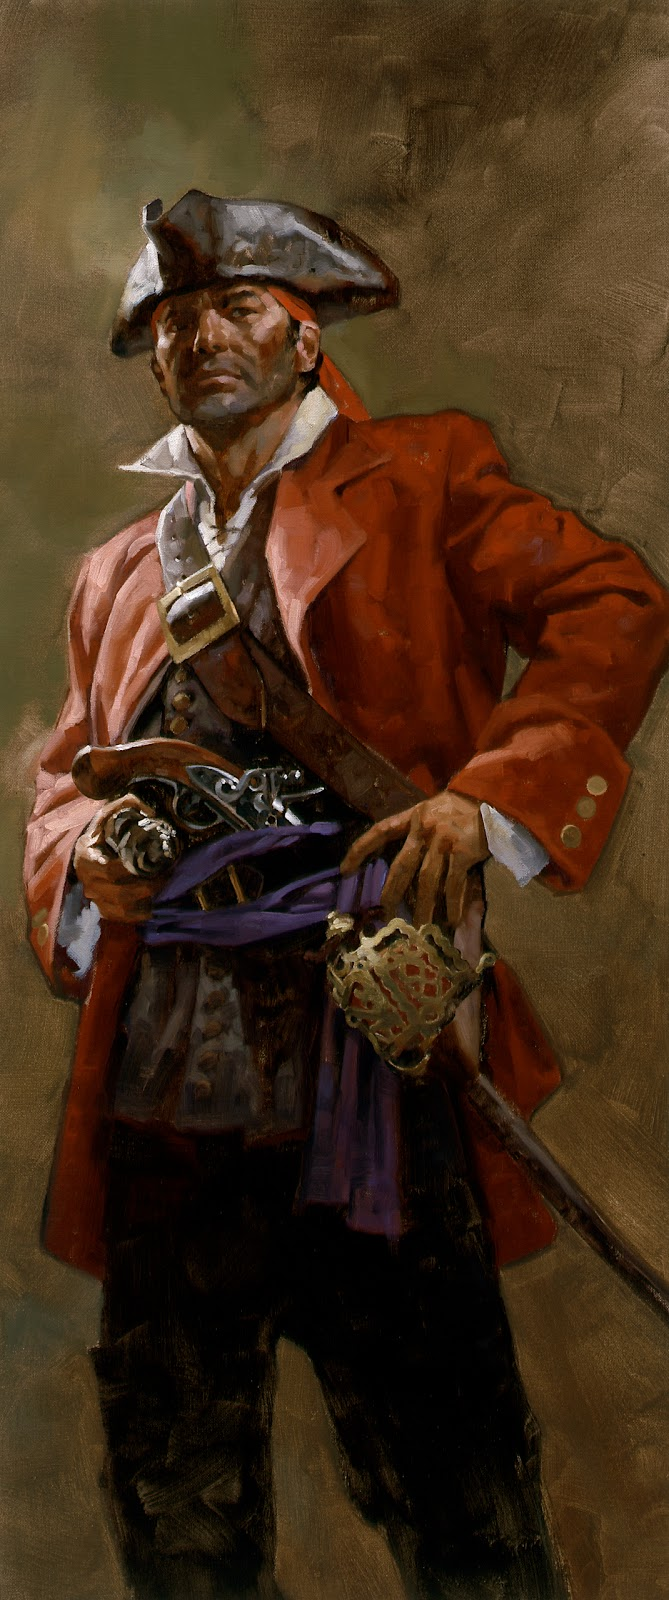 Muddy Colors: Pirate Paintings for National Geographic